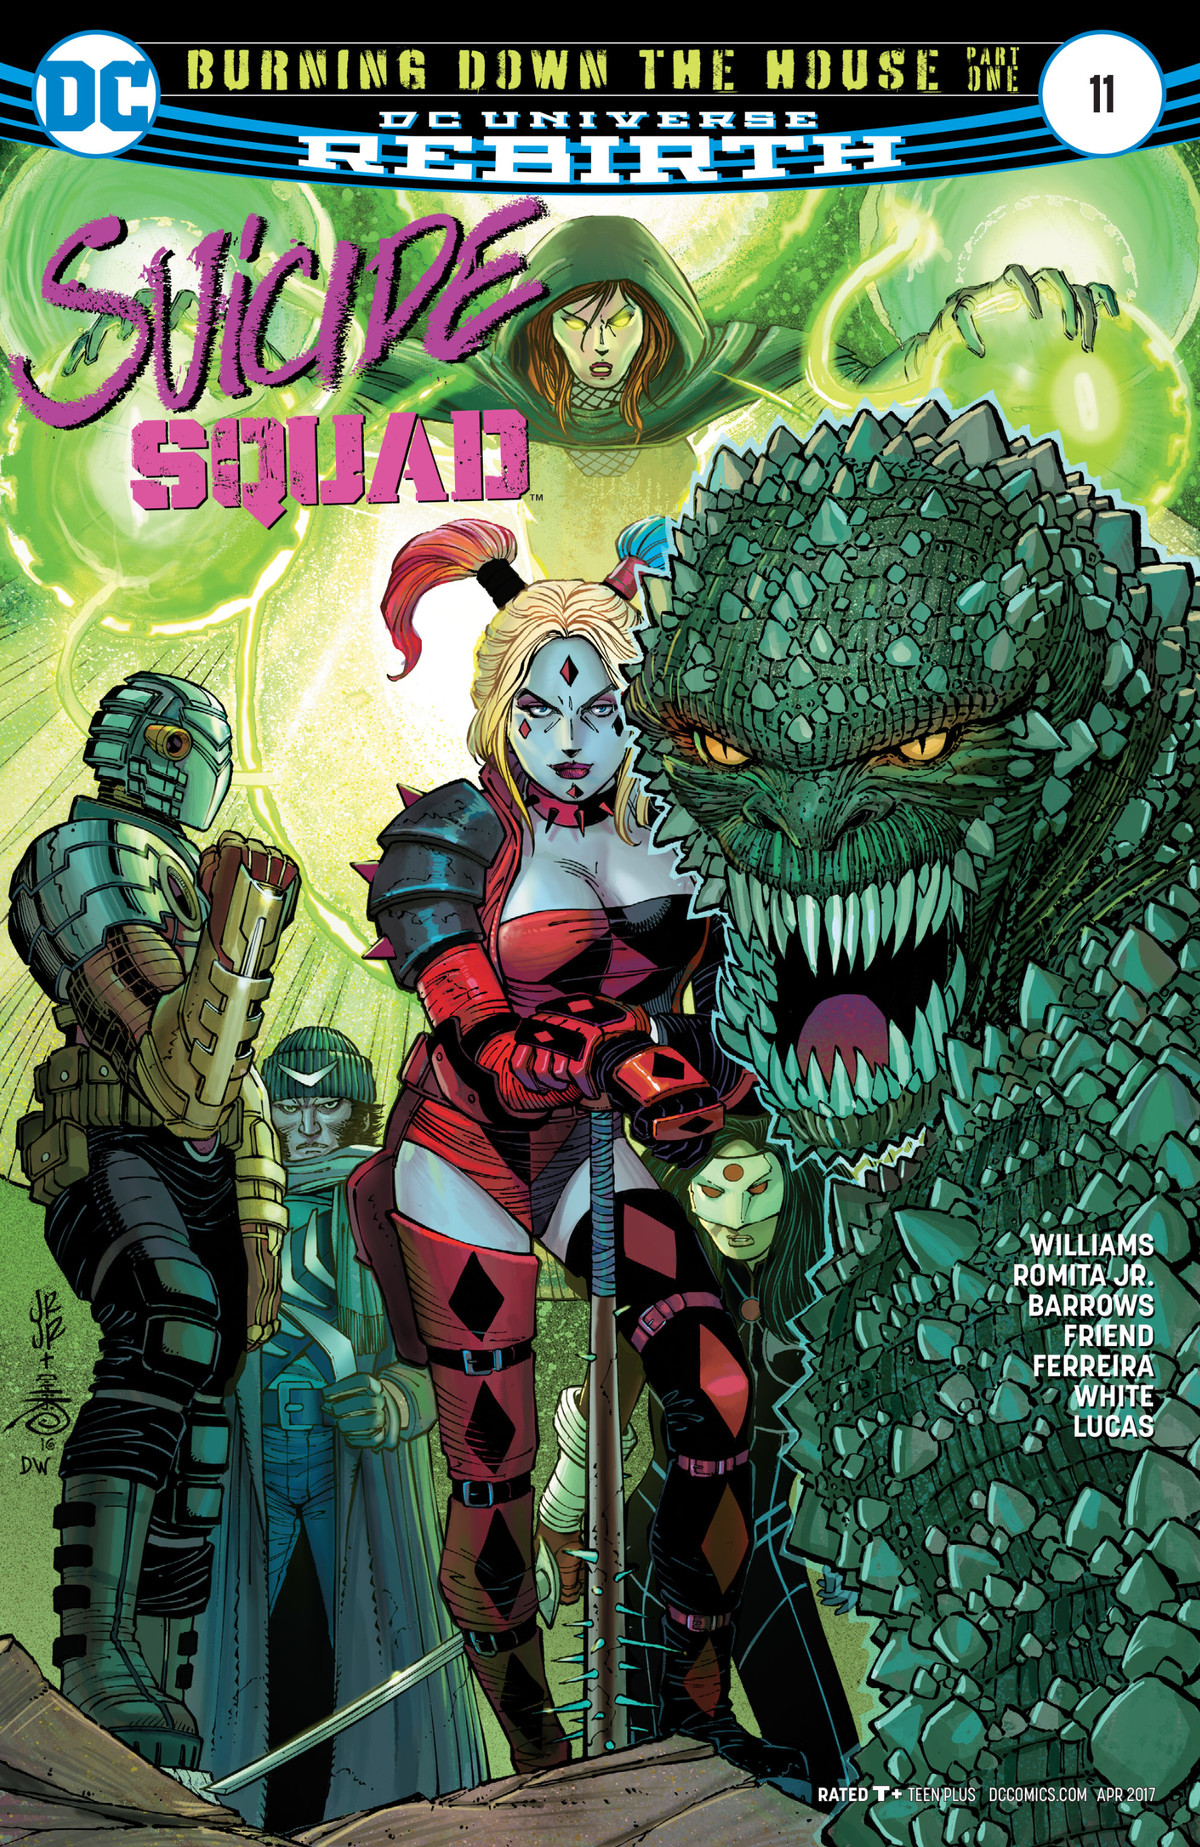 Harley Quinn, Killer Croc, the Enchantress, Boomerang, and Deadshot on the cover of Suicide Squad #11, DC Comics (2017).